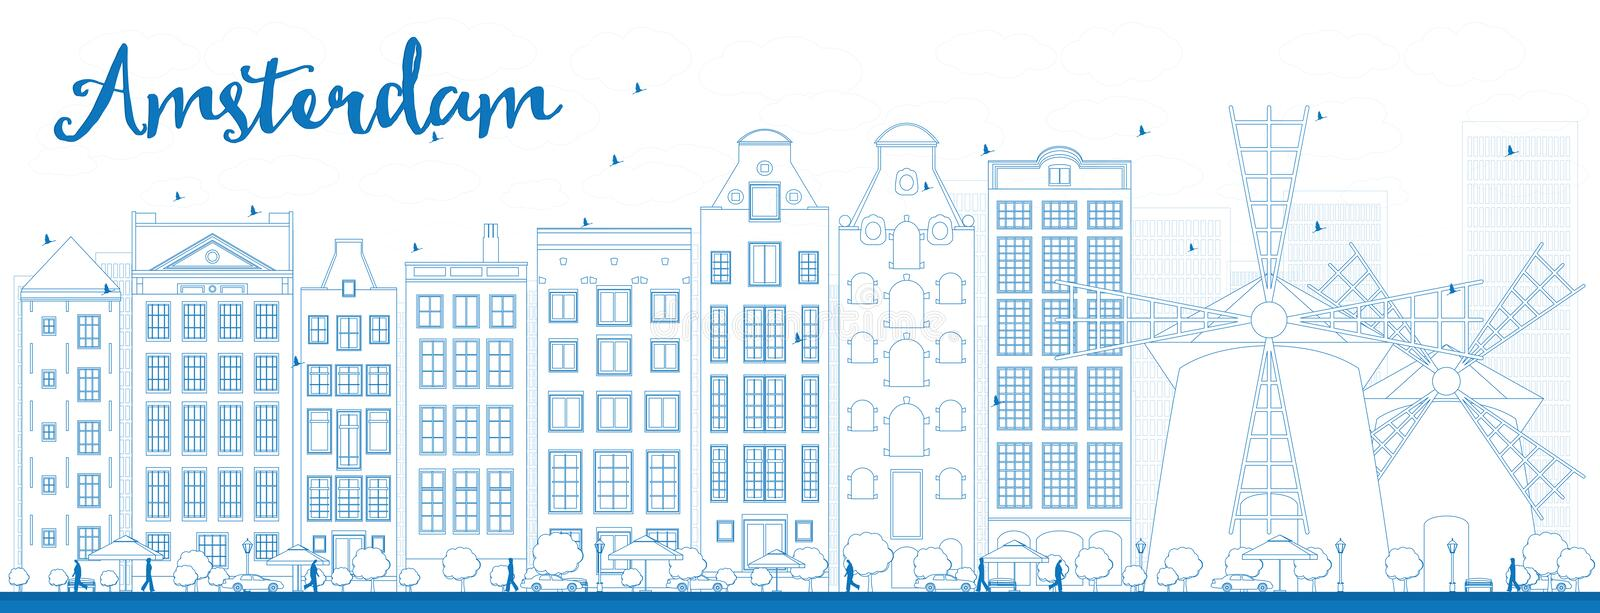 Outline Amsterdam city skyline with blue buildings. Vector illustration. Business travel and tourism concept with historic buildings. Image for presentation royalty free illustration